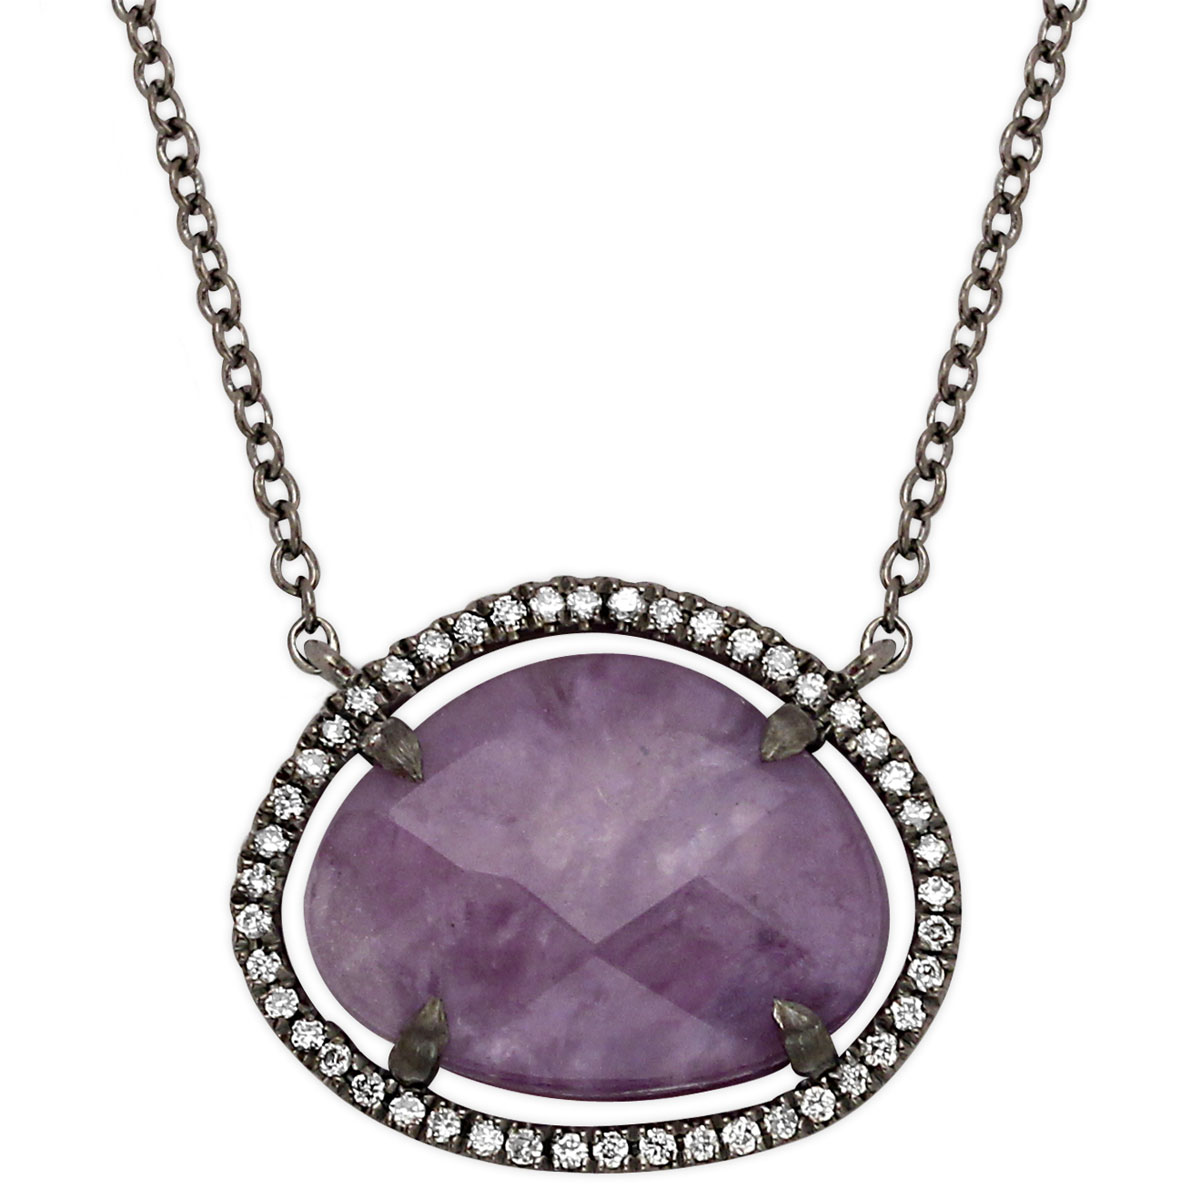 342300-Charoite and Diamond Necklace